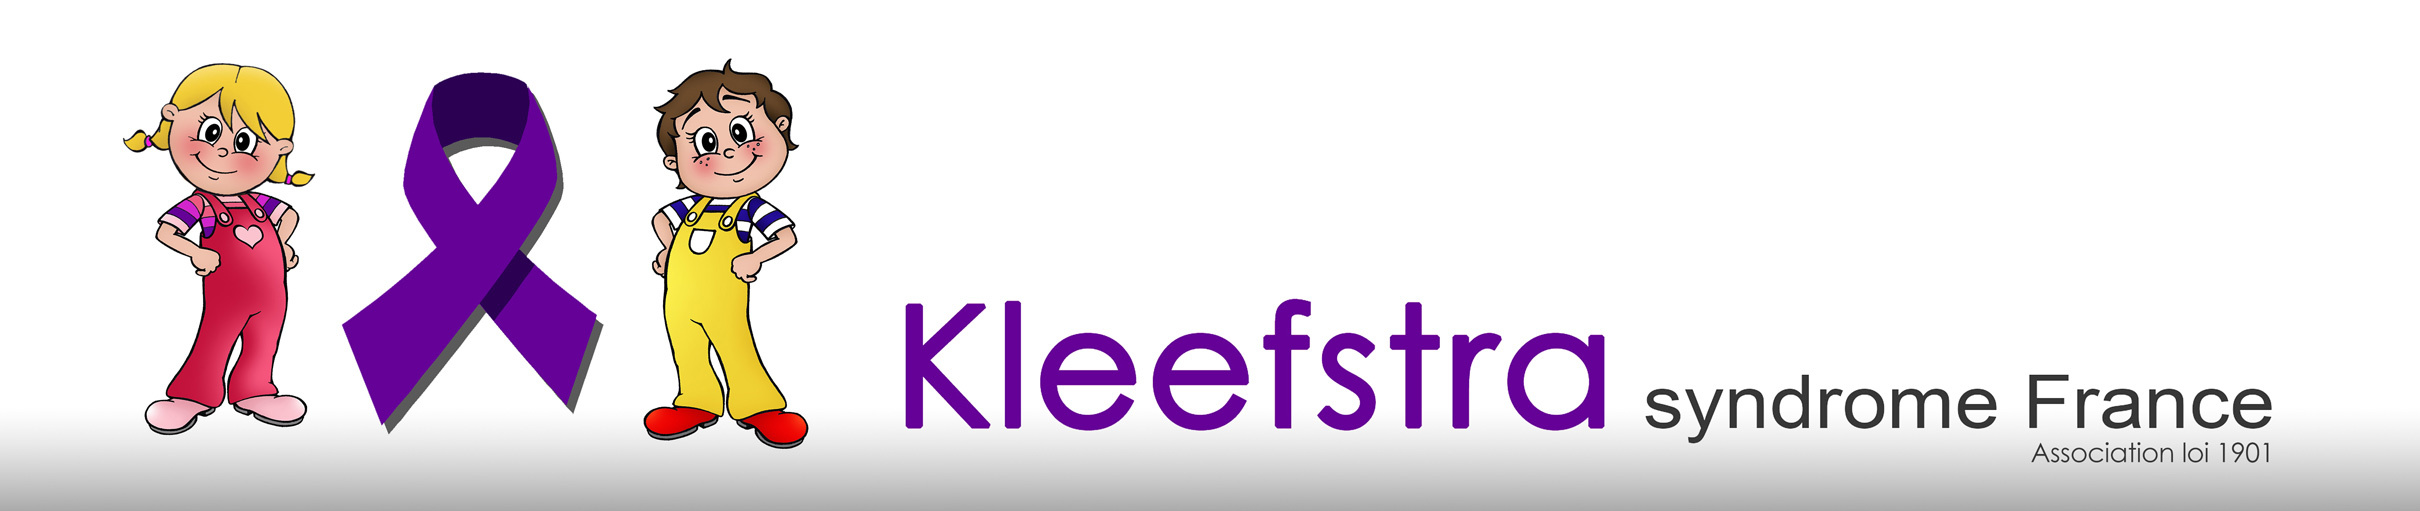 KLEEFSTRA SYNDROME FRANCE ASSOCIATION LOI 1901